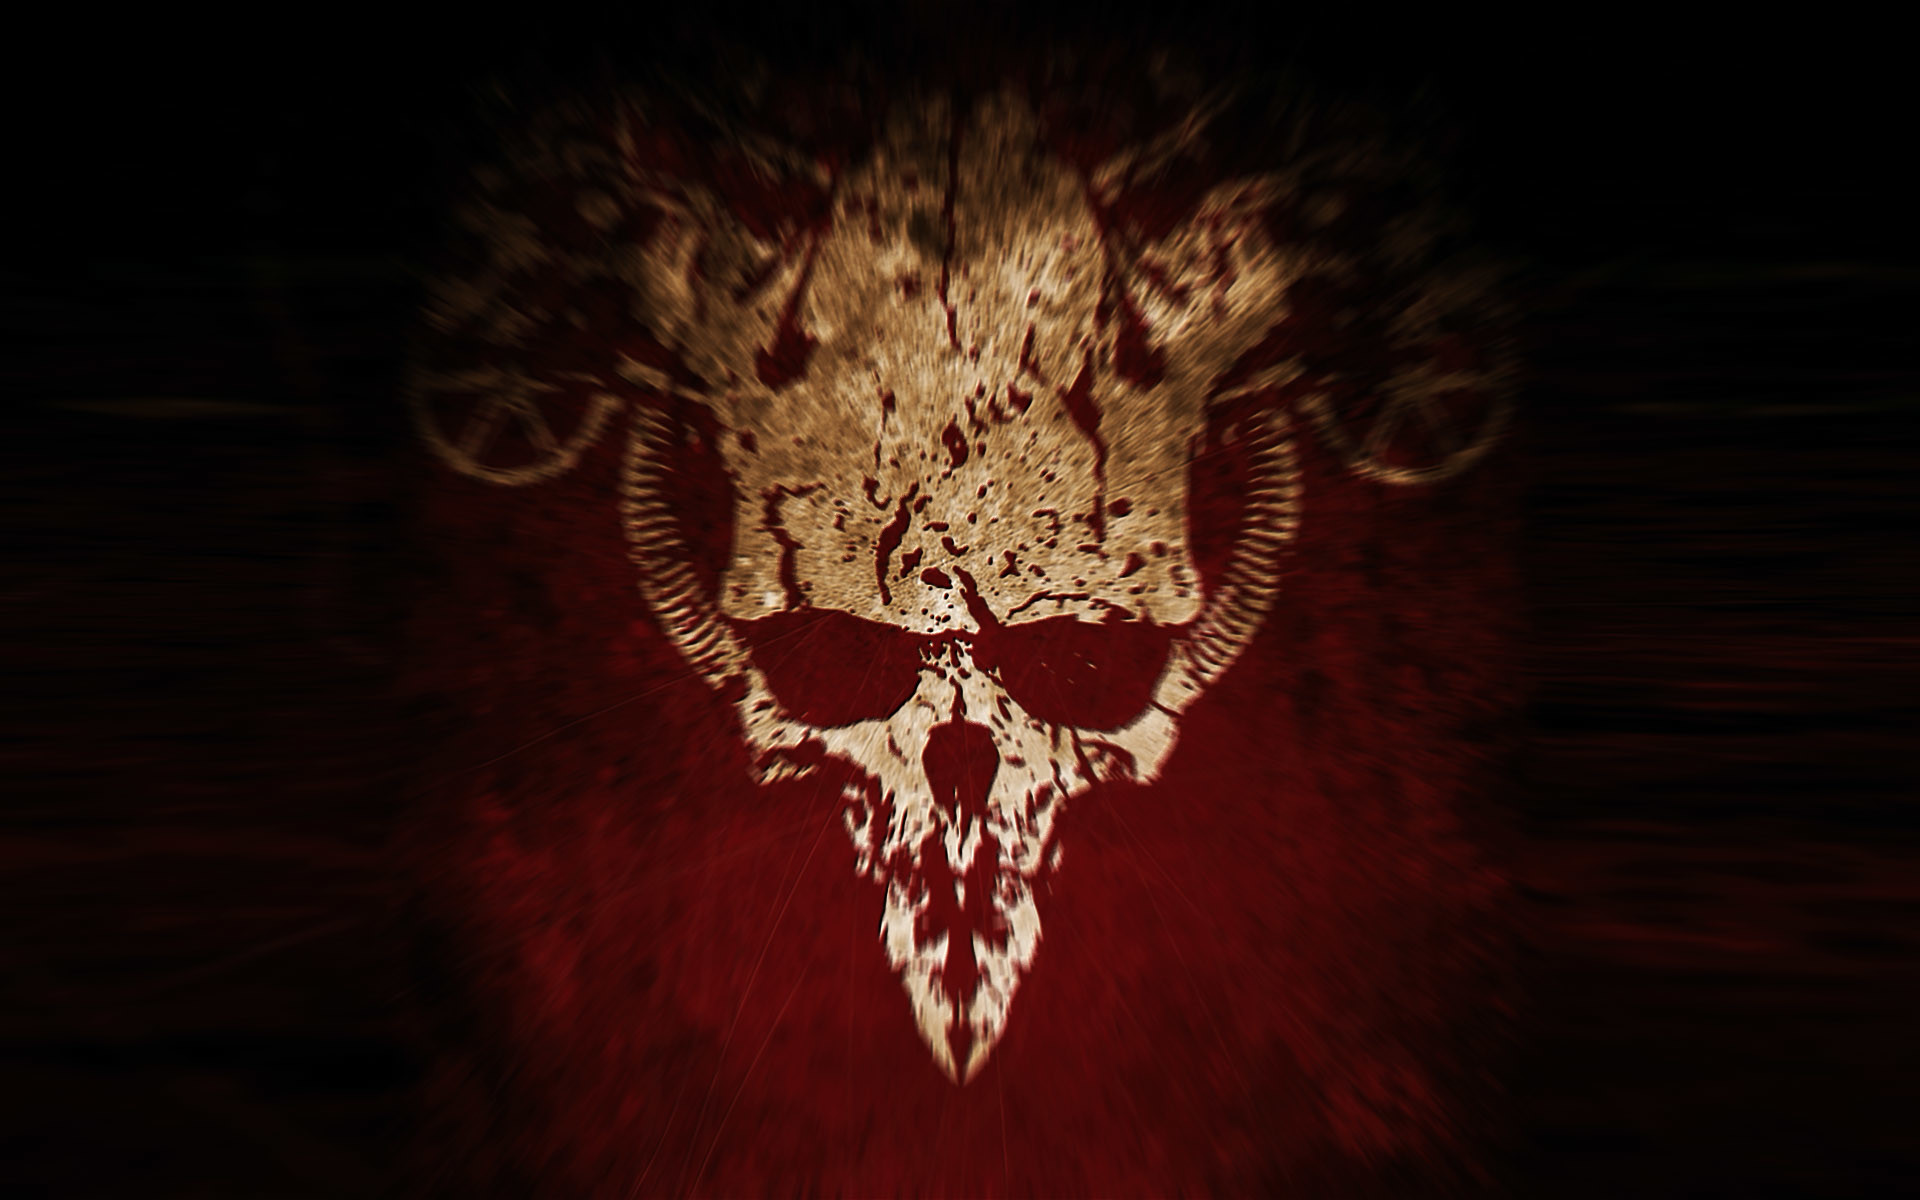 Evil skull wallpaper - Devil skull wallpaper ...